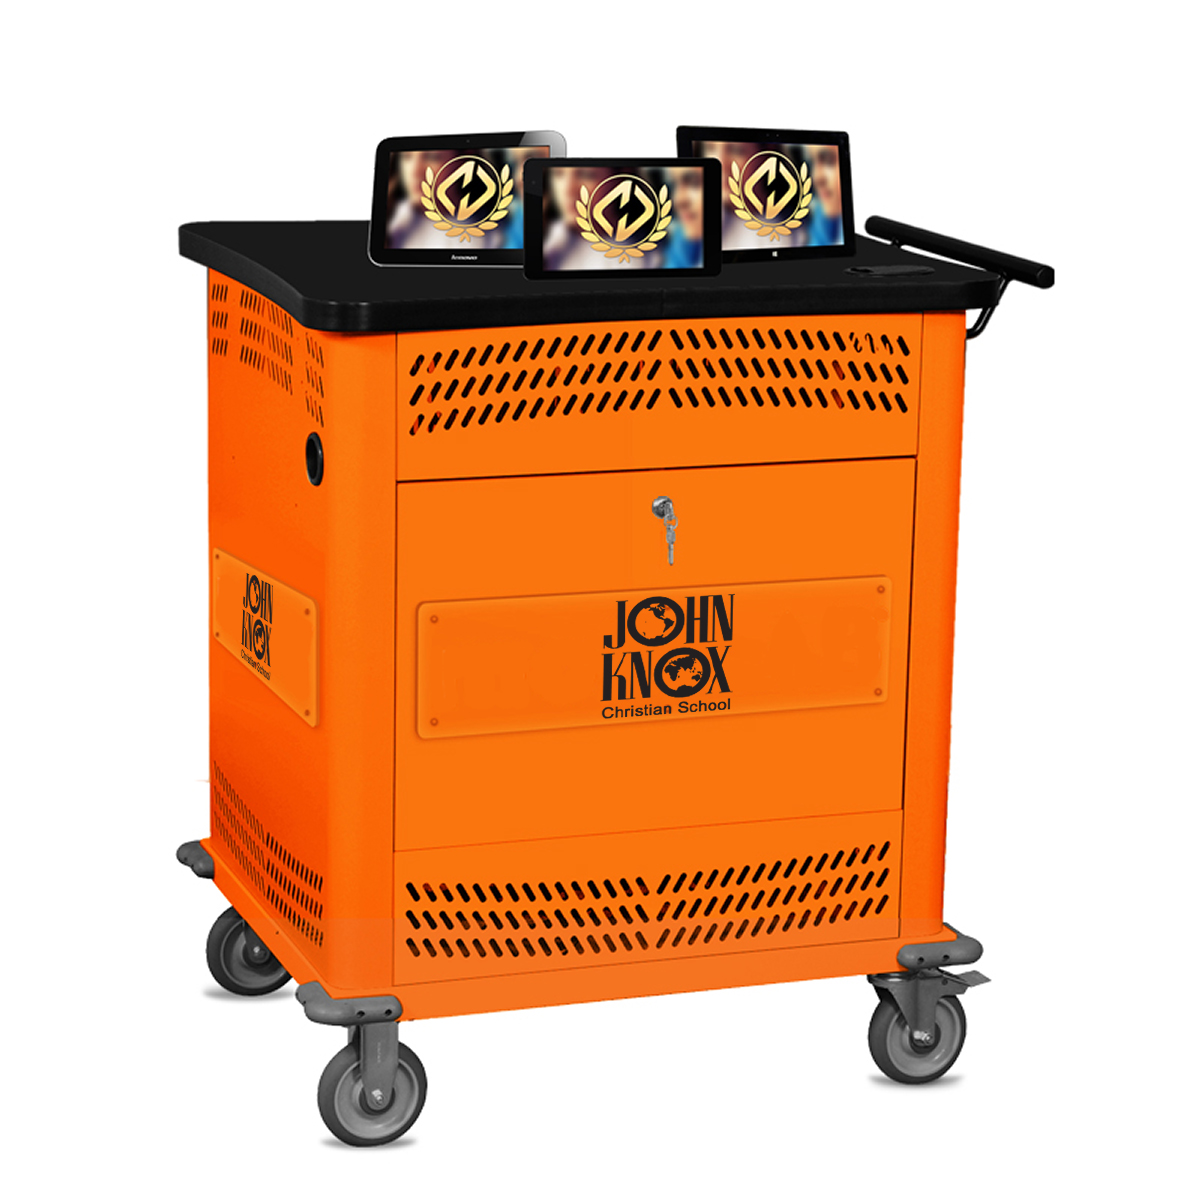 JohnKnoxChristianSchool_Cart_Mockup